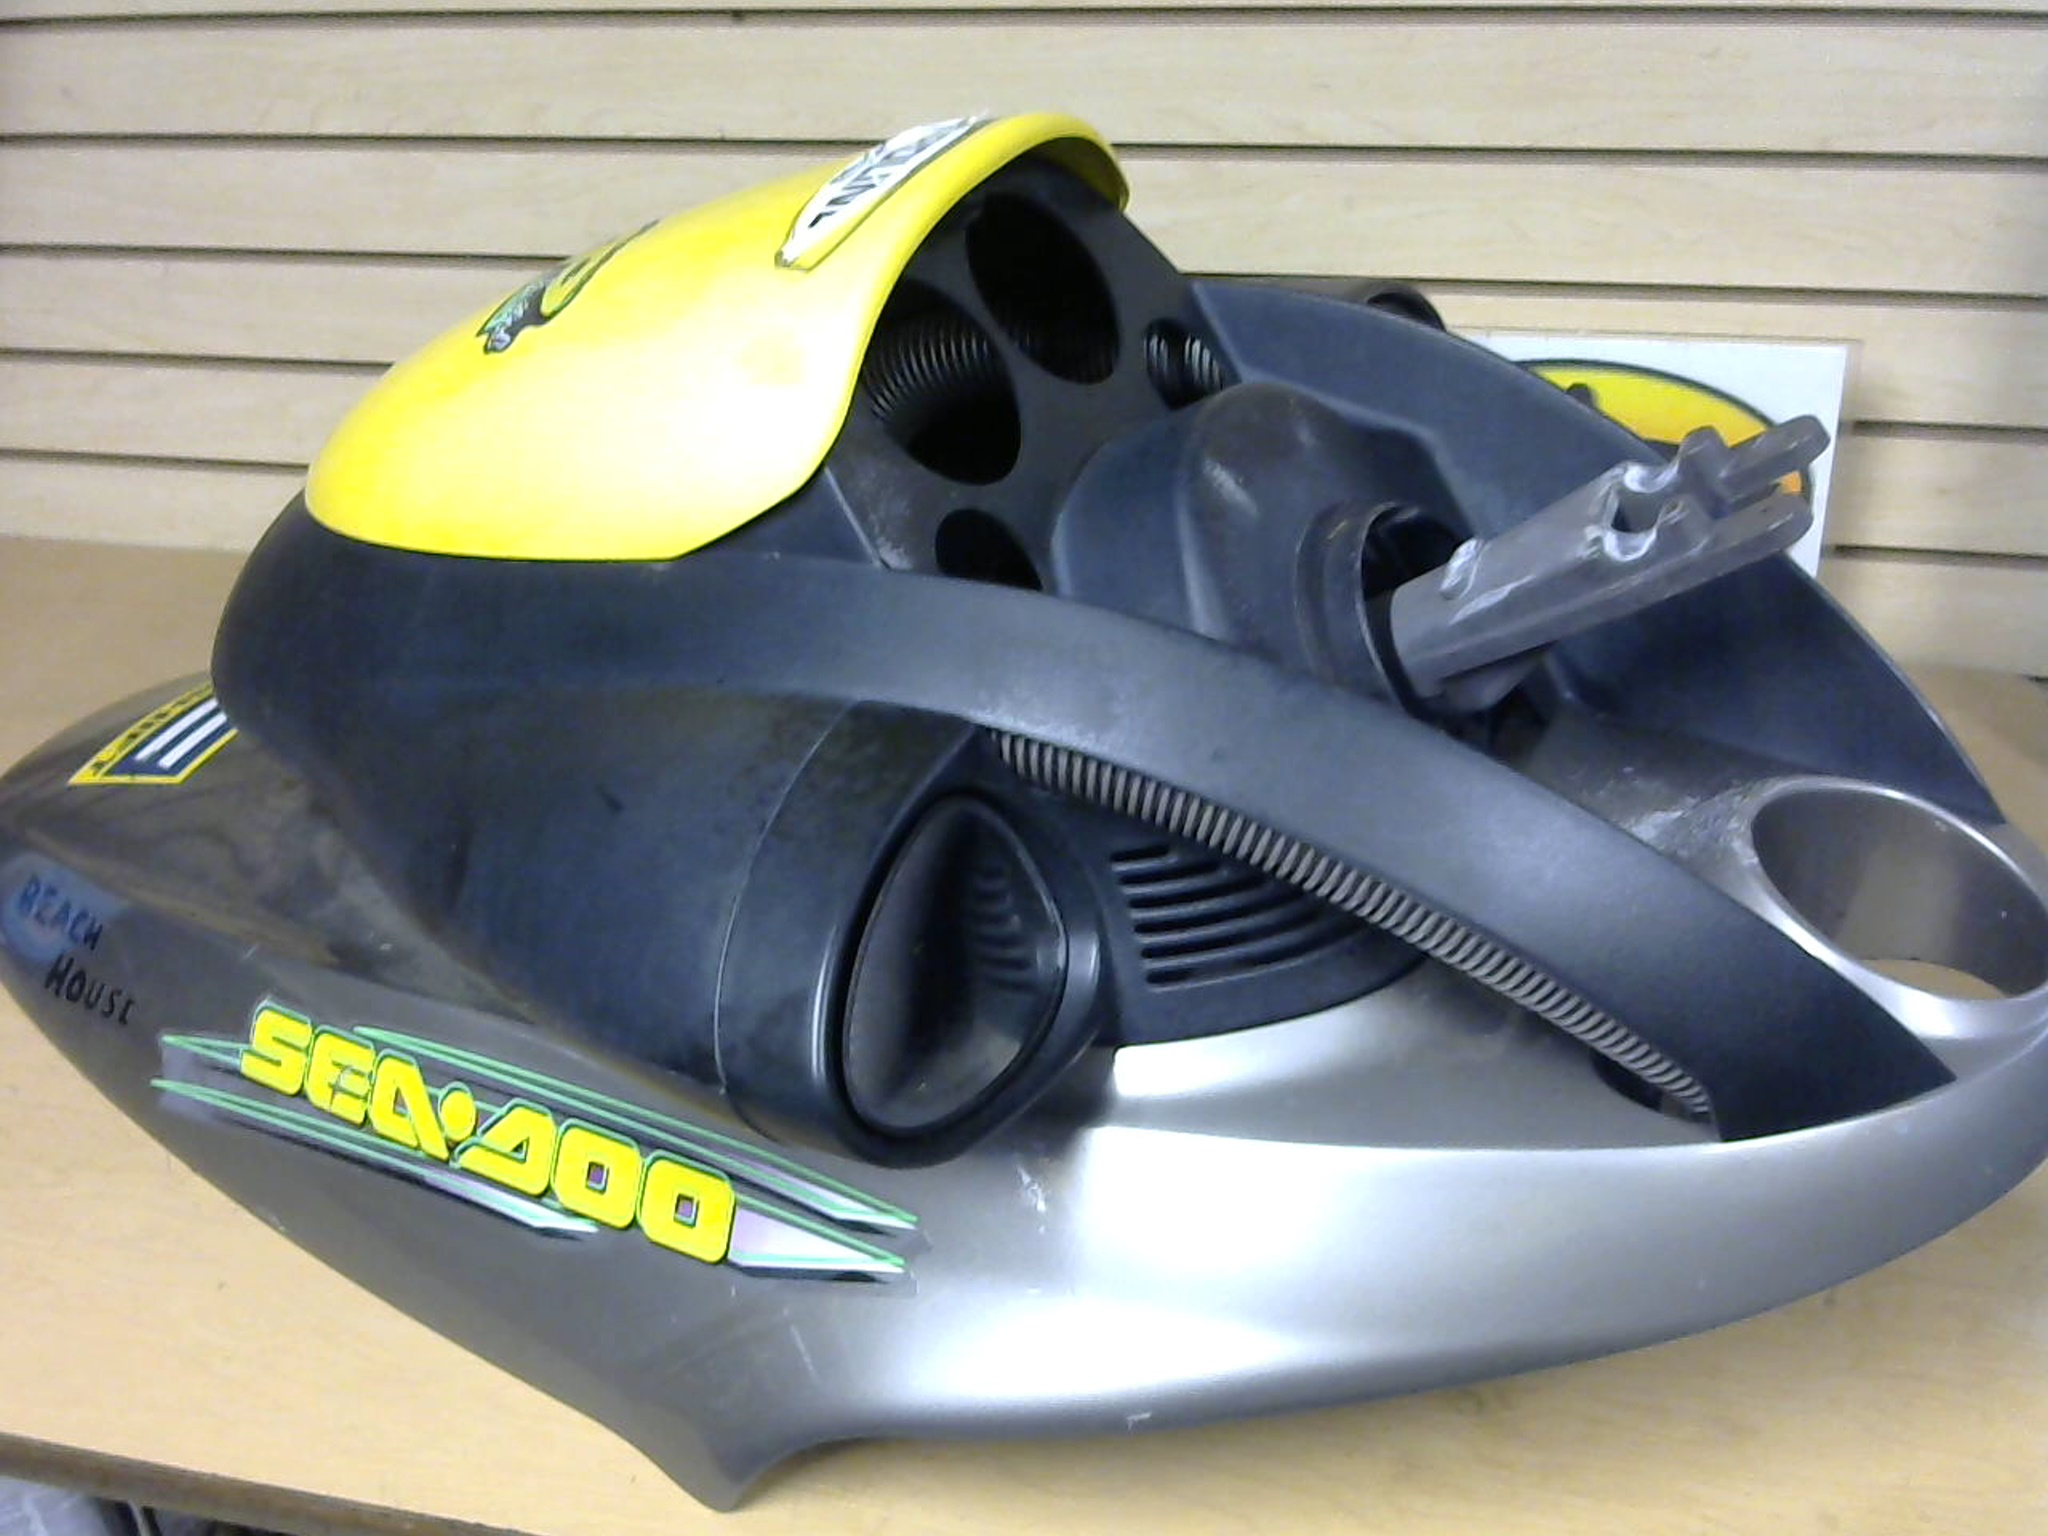 1996 Seadoo Xp >> 1998 Seadoo XP Limited Complete Front Storage Cover 269500328 269700054 - Used Jetski Parts ...